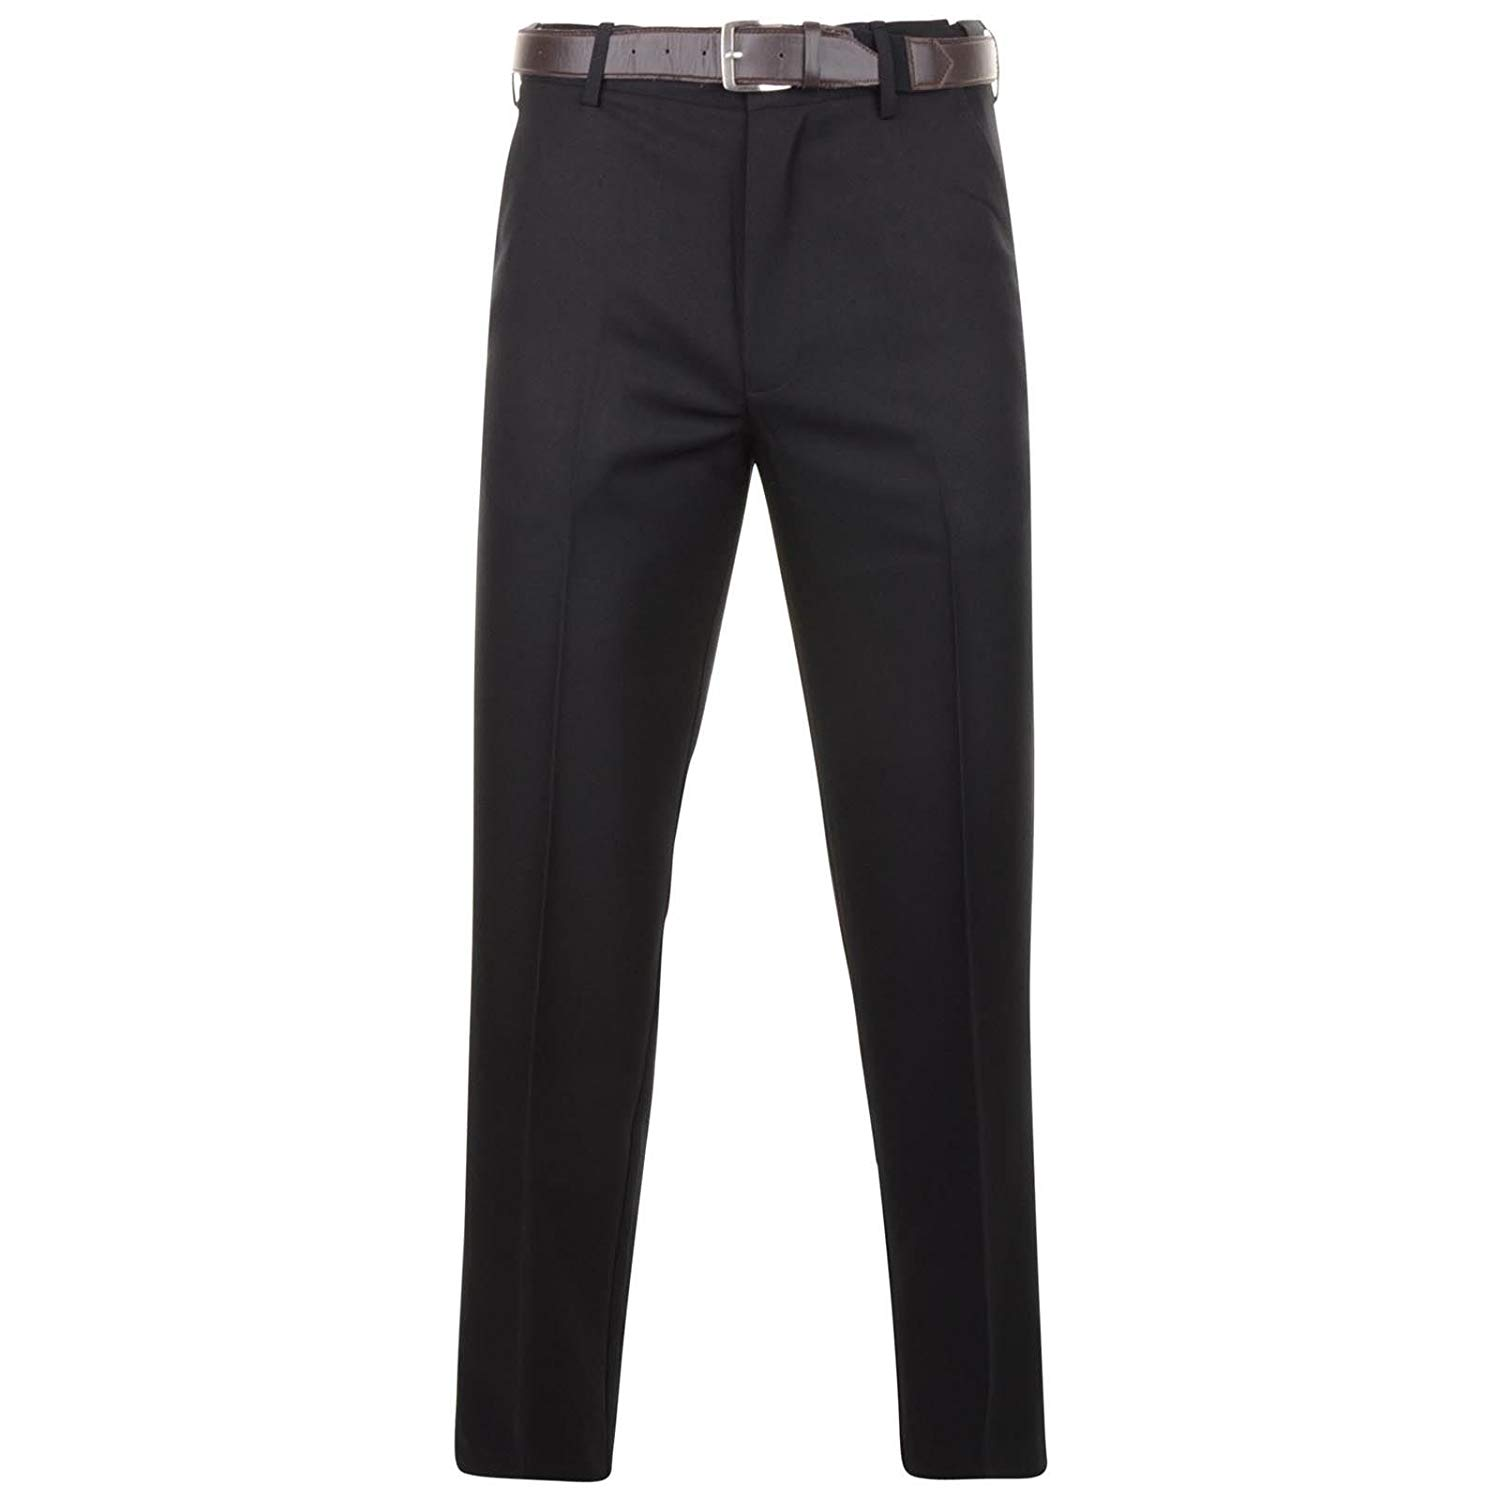 1008-formal-trousers-black